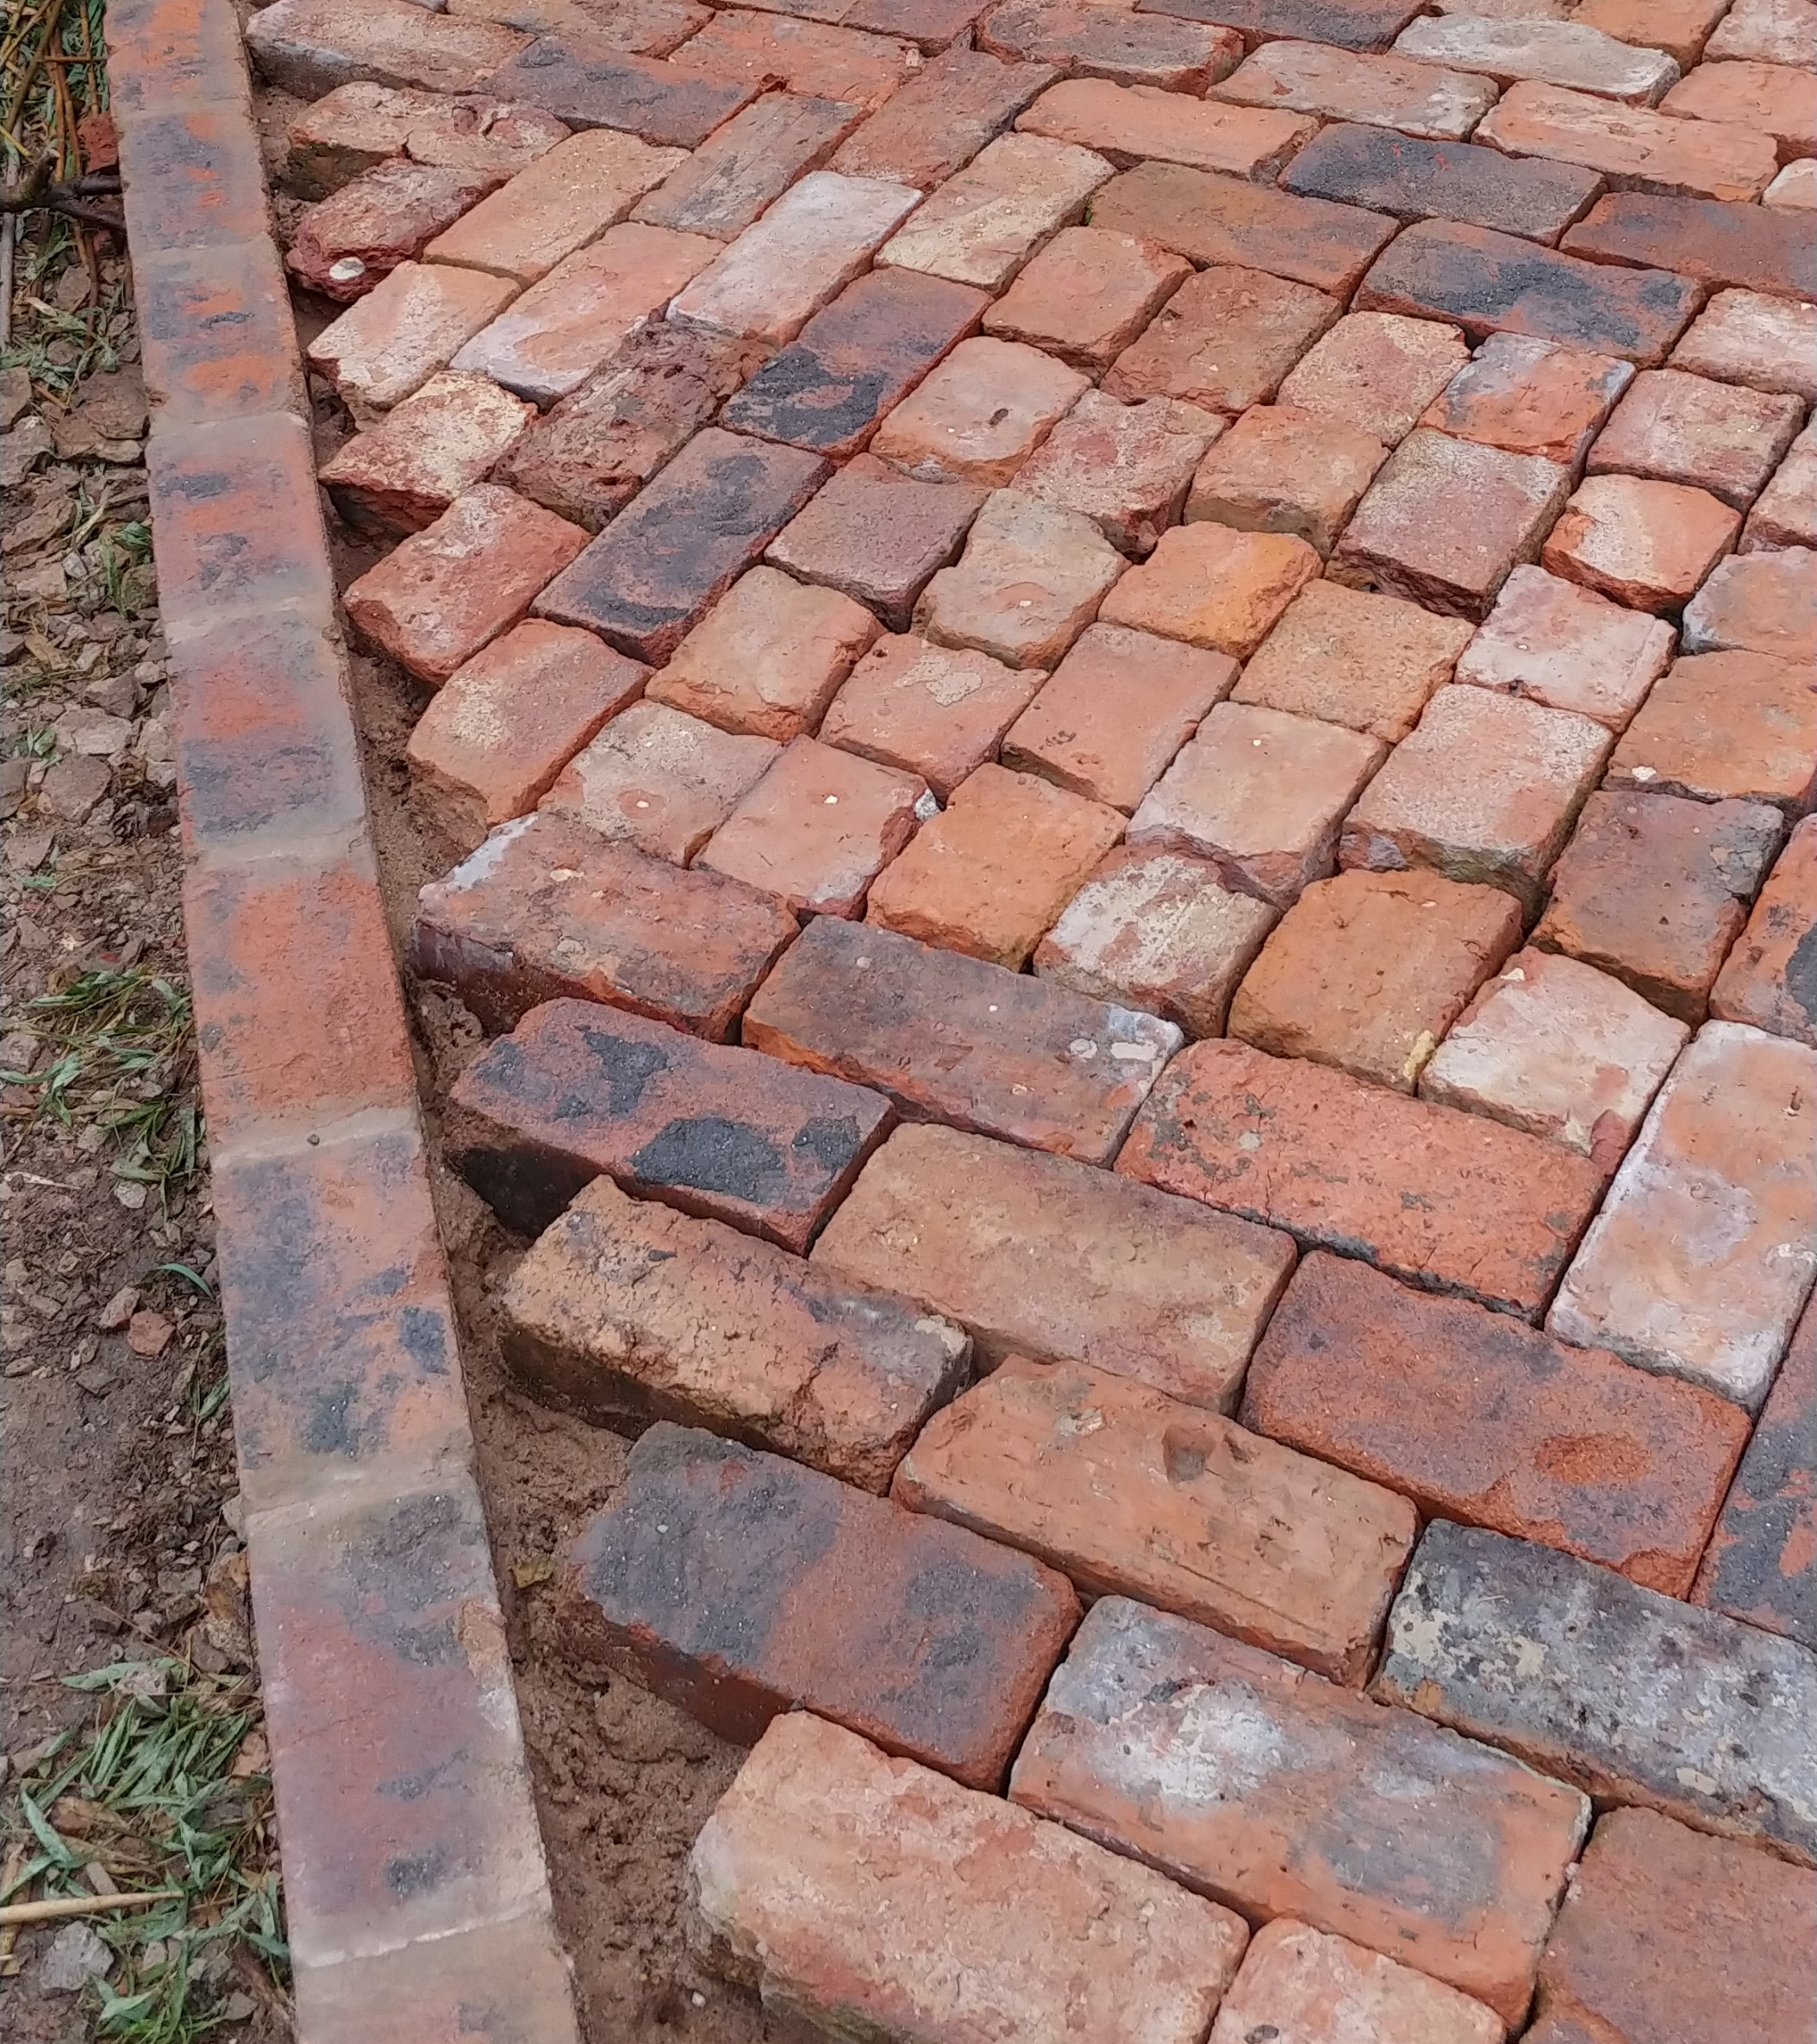 Close up of the diagonal edge against the mortared edge. Some bricks touch, some don't, and that's OK.